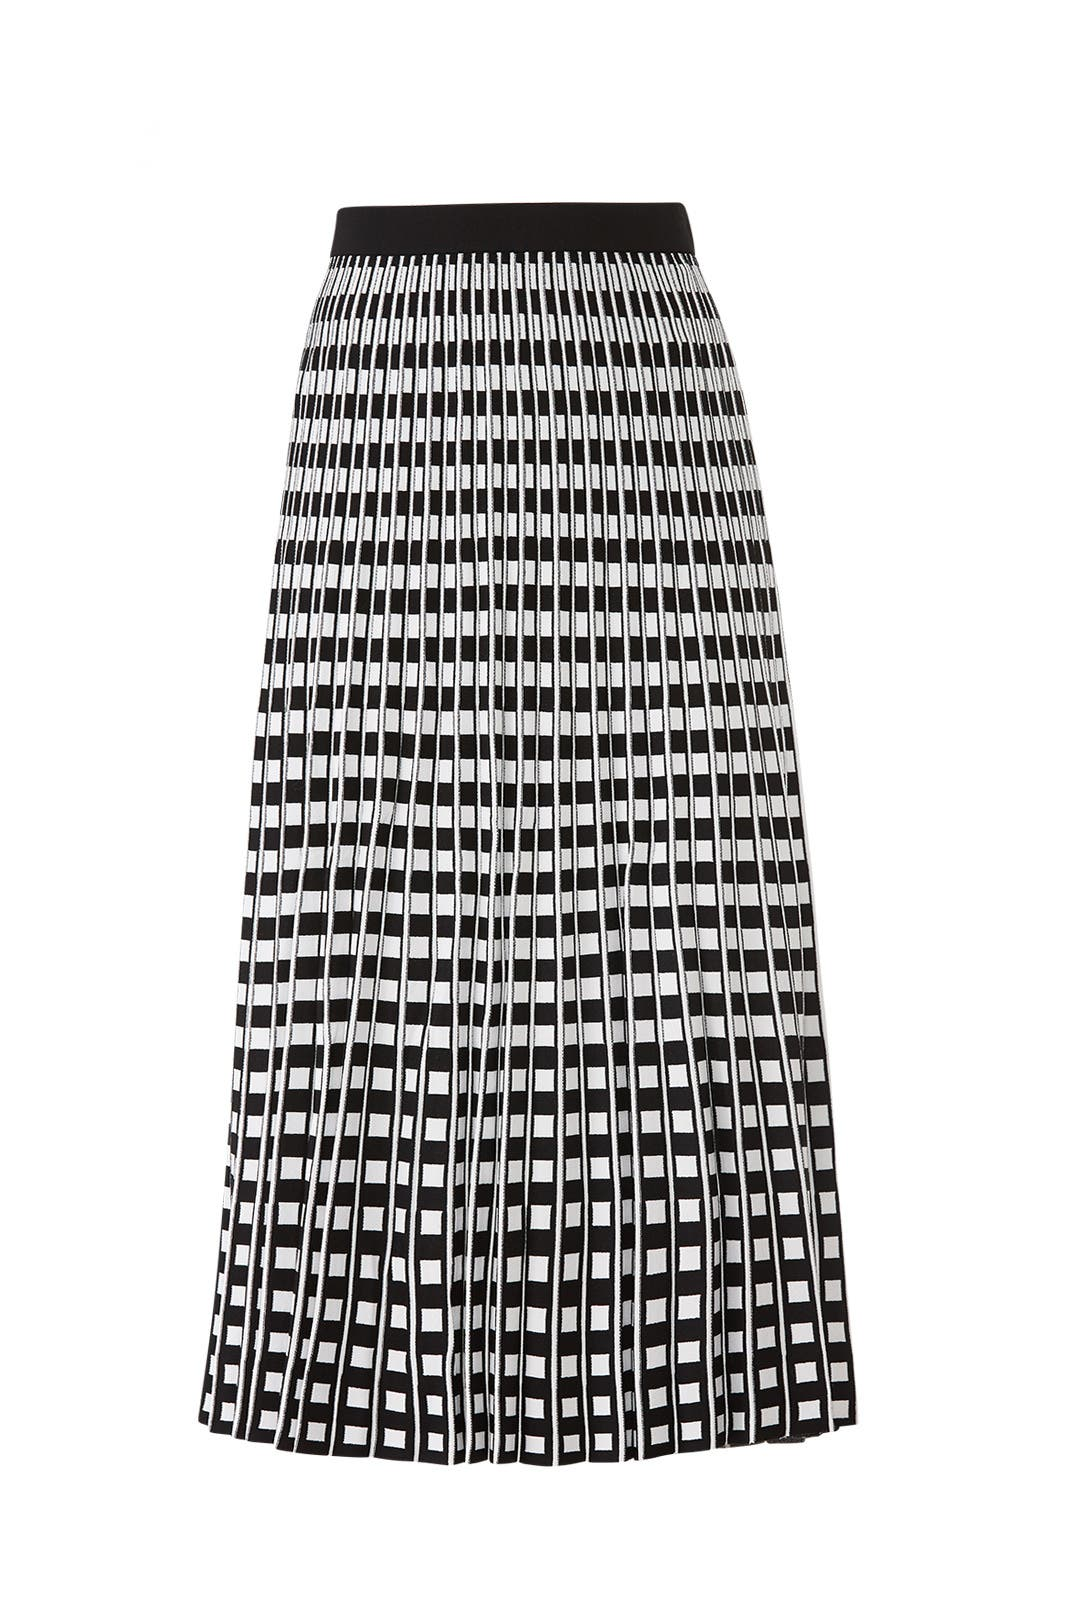 38d4a9fcb3 Pleated Check Skirt by Derek Lam 10 Crosby for $85   Rent the Runway